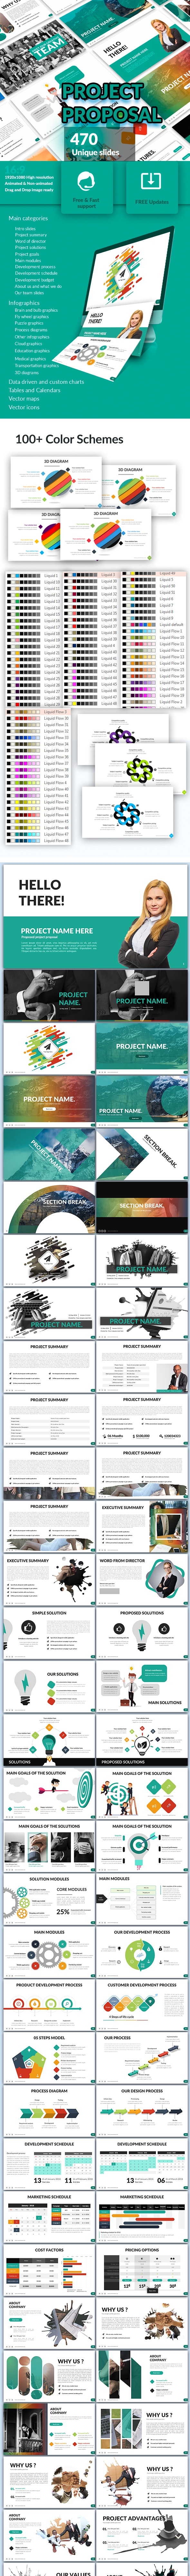 Project Proposal - Power Point Presentation Template - PowerPoint Templates Presentation Templates